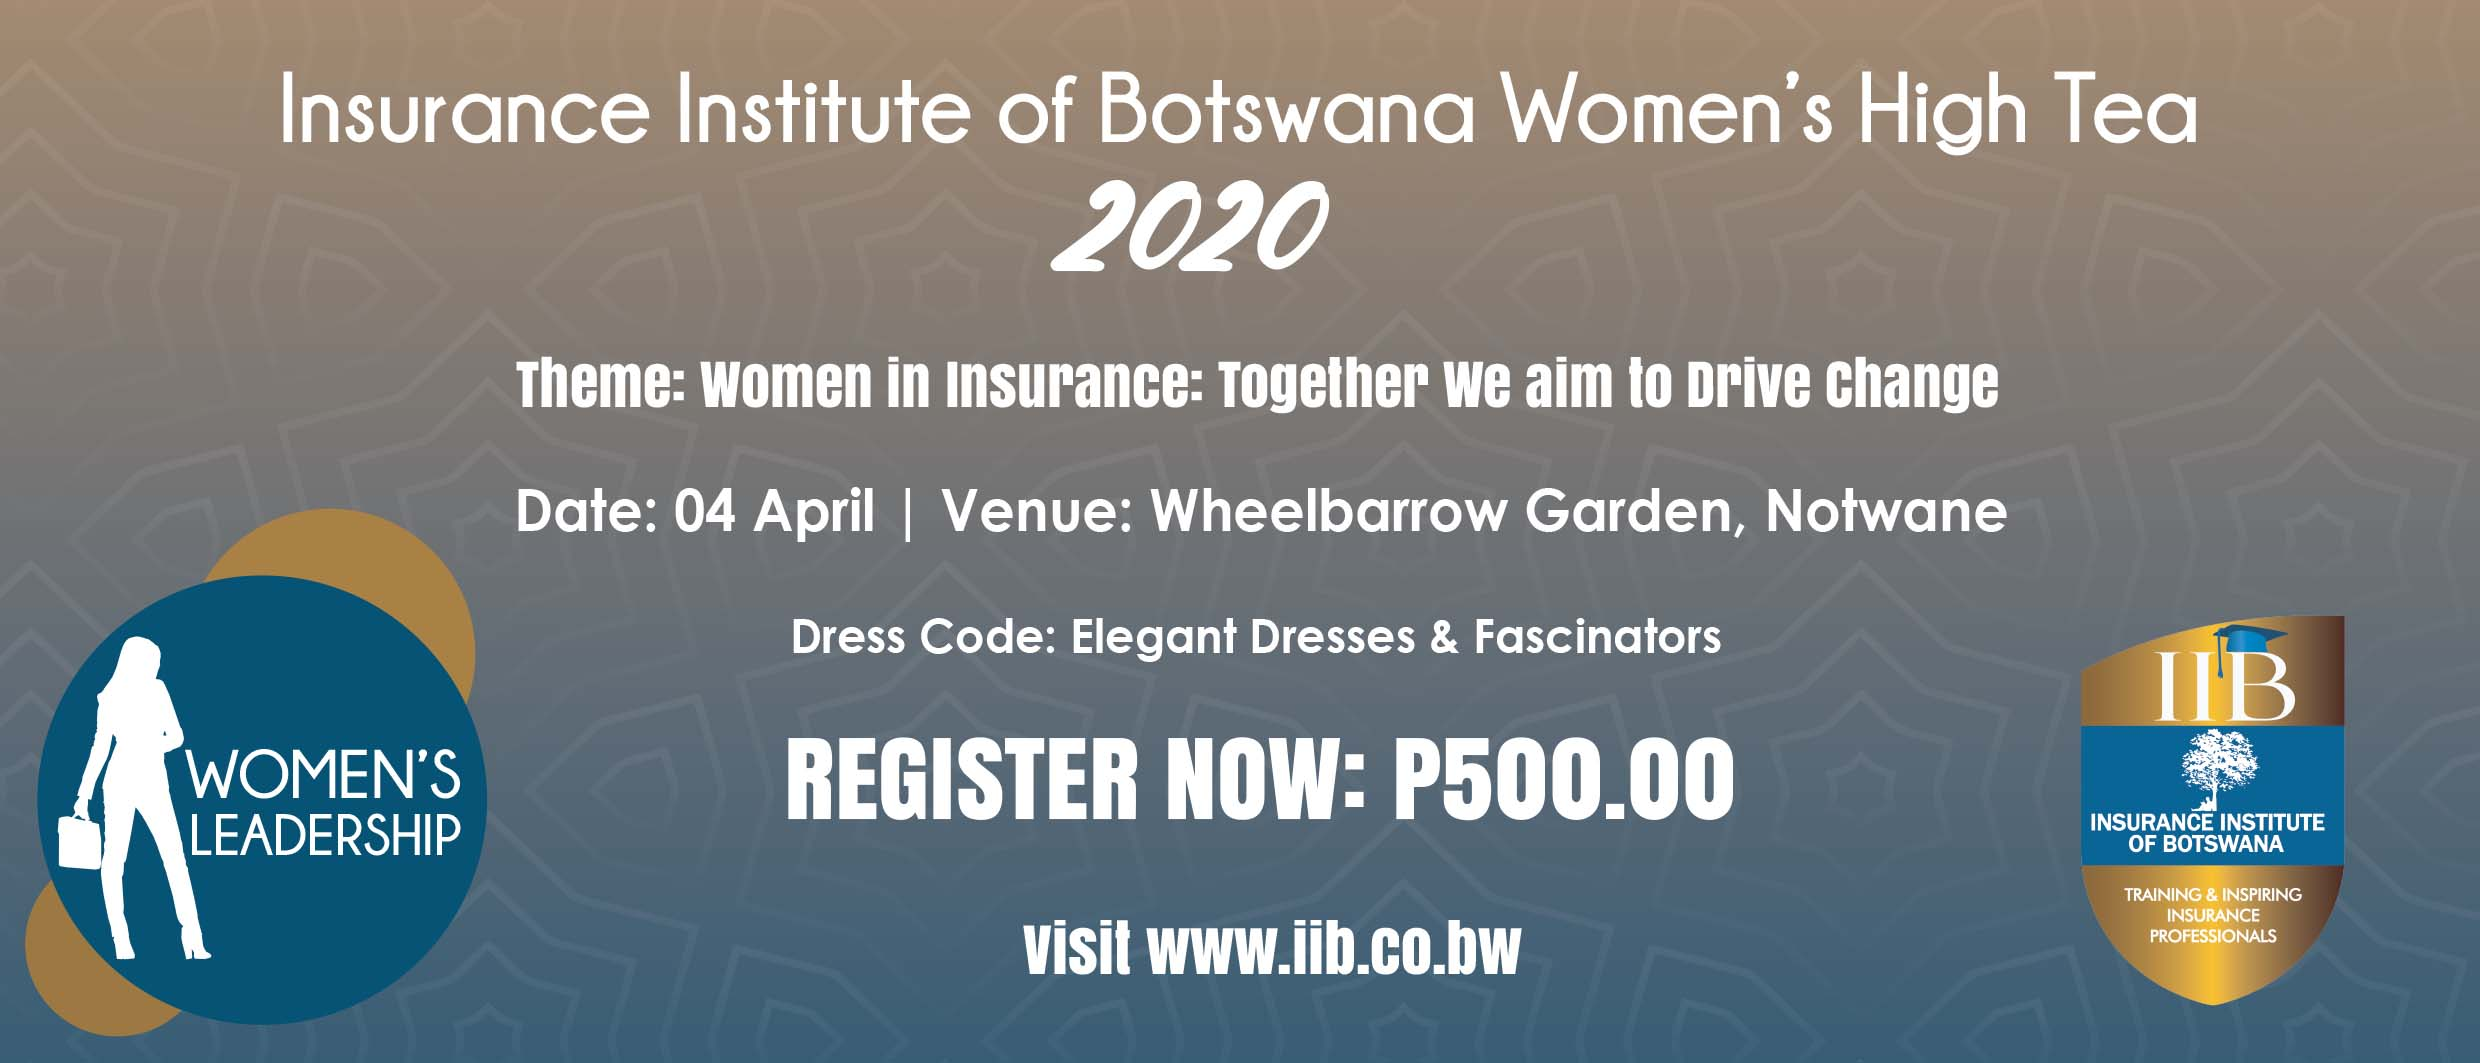 Insurance Institute Of Botswana